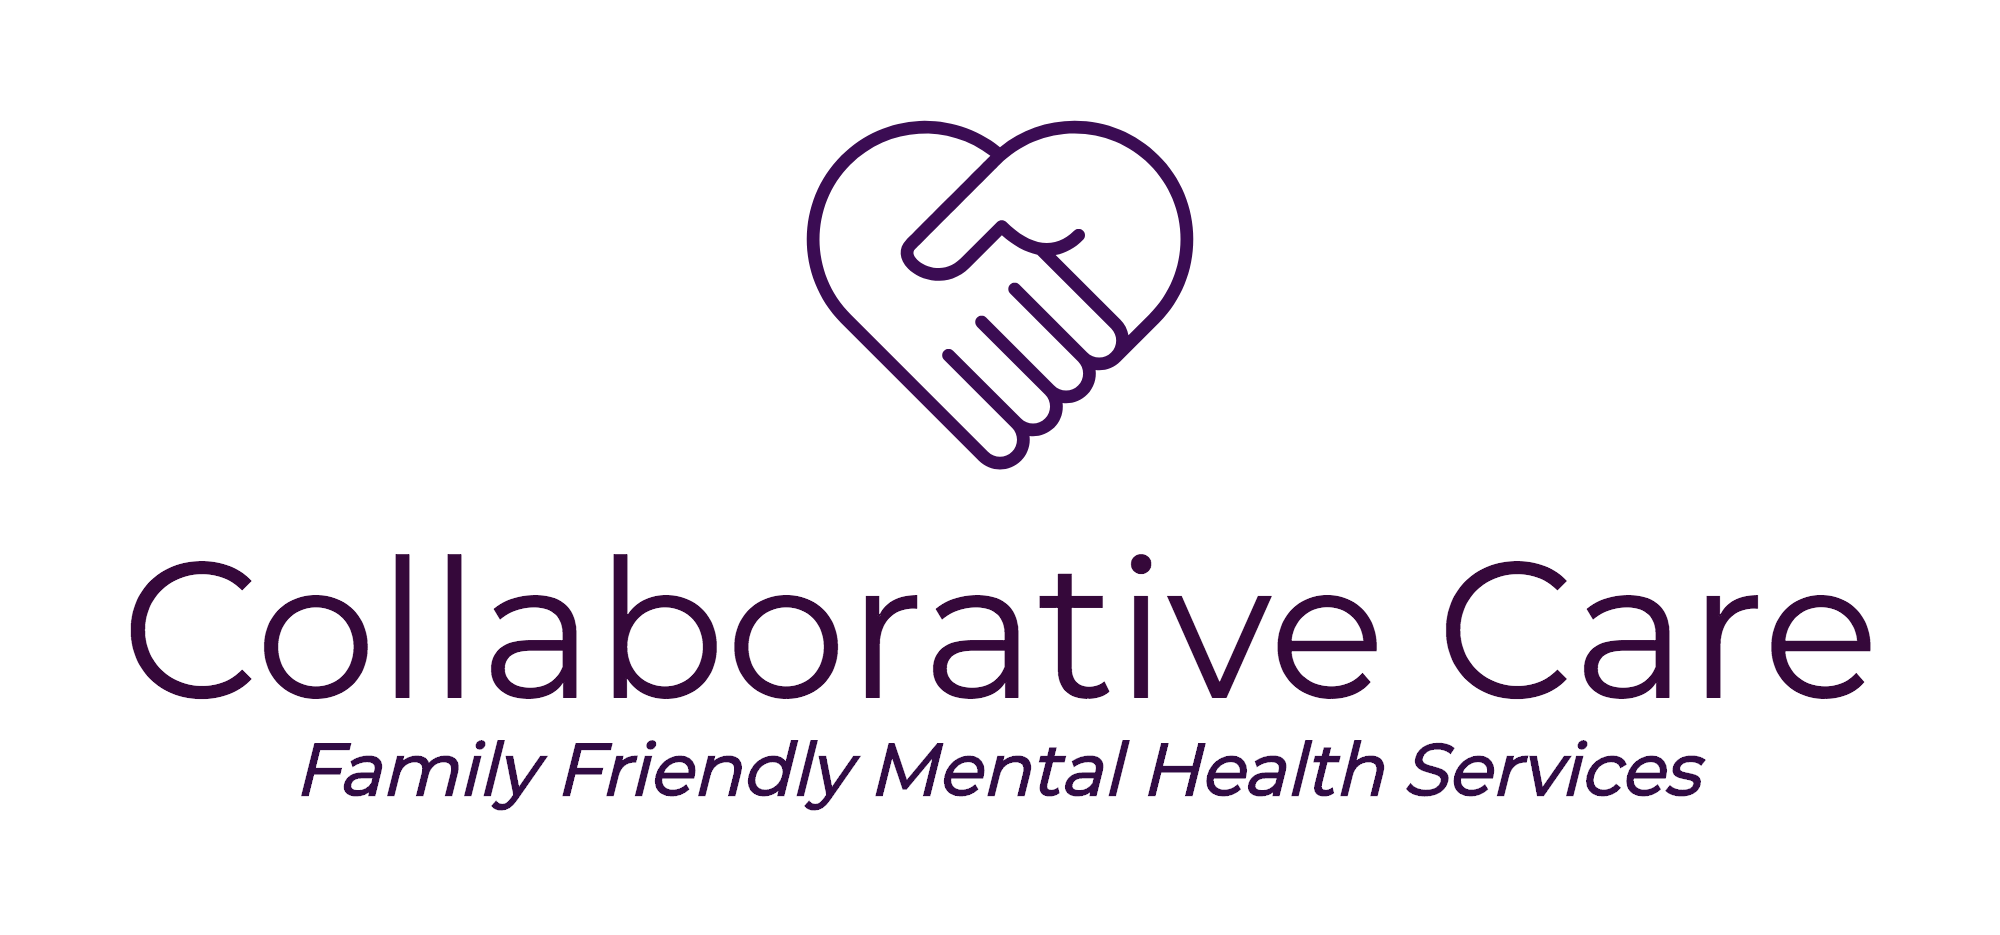 Collaborative Care-logo (2) copy.png